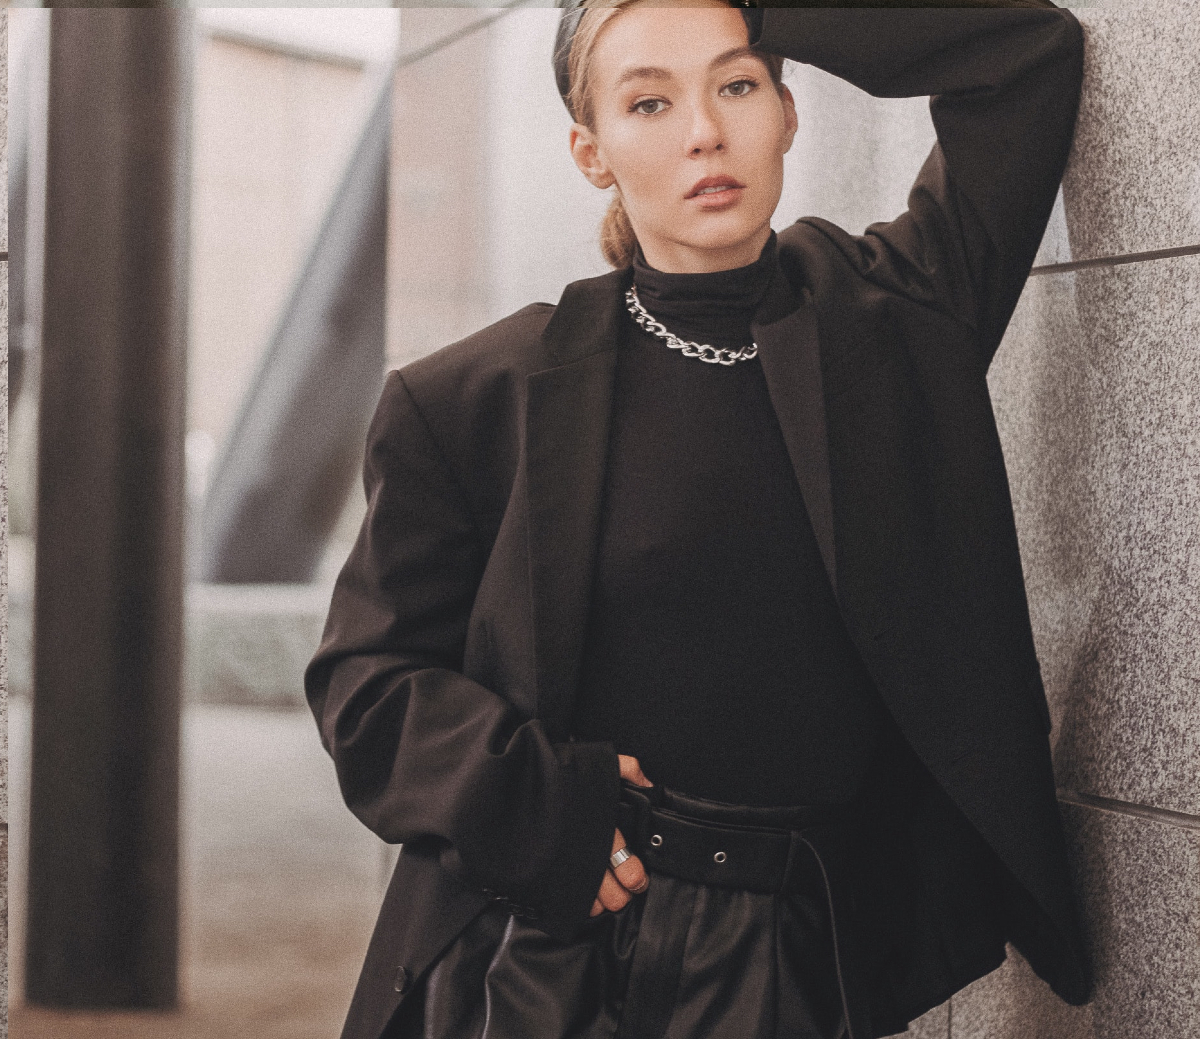 french women fashion style rules woman in black fashionable